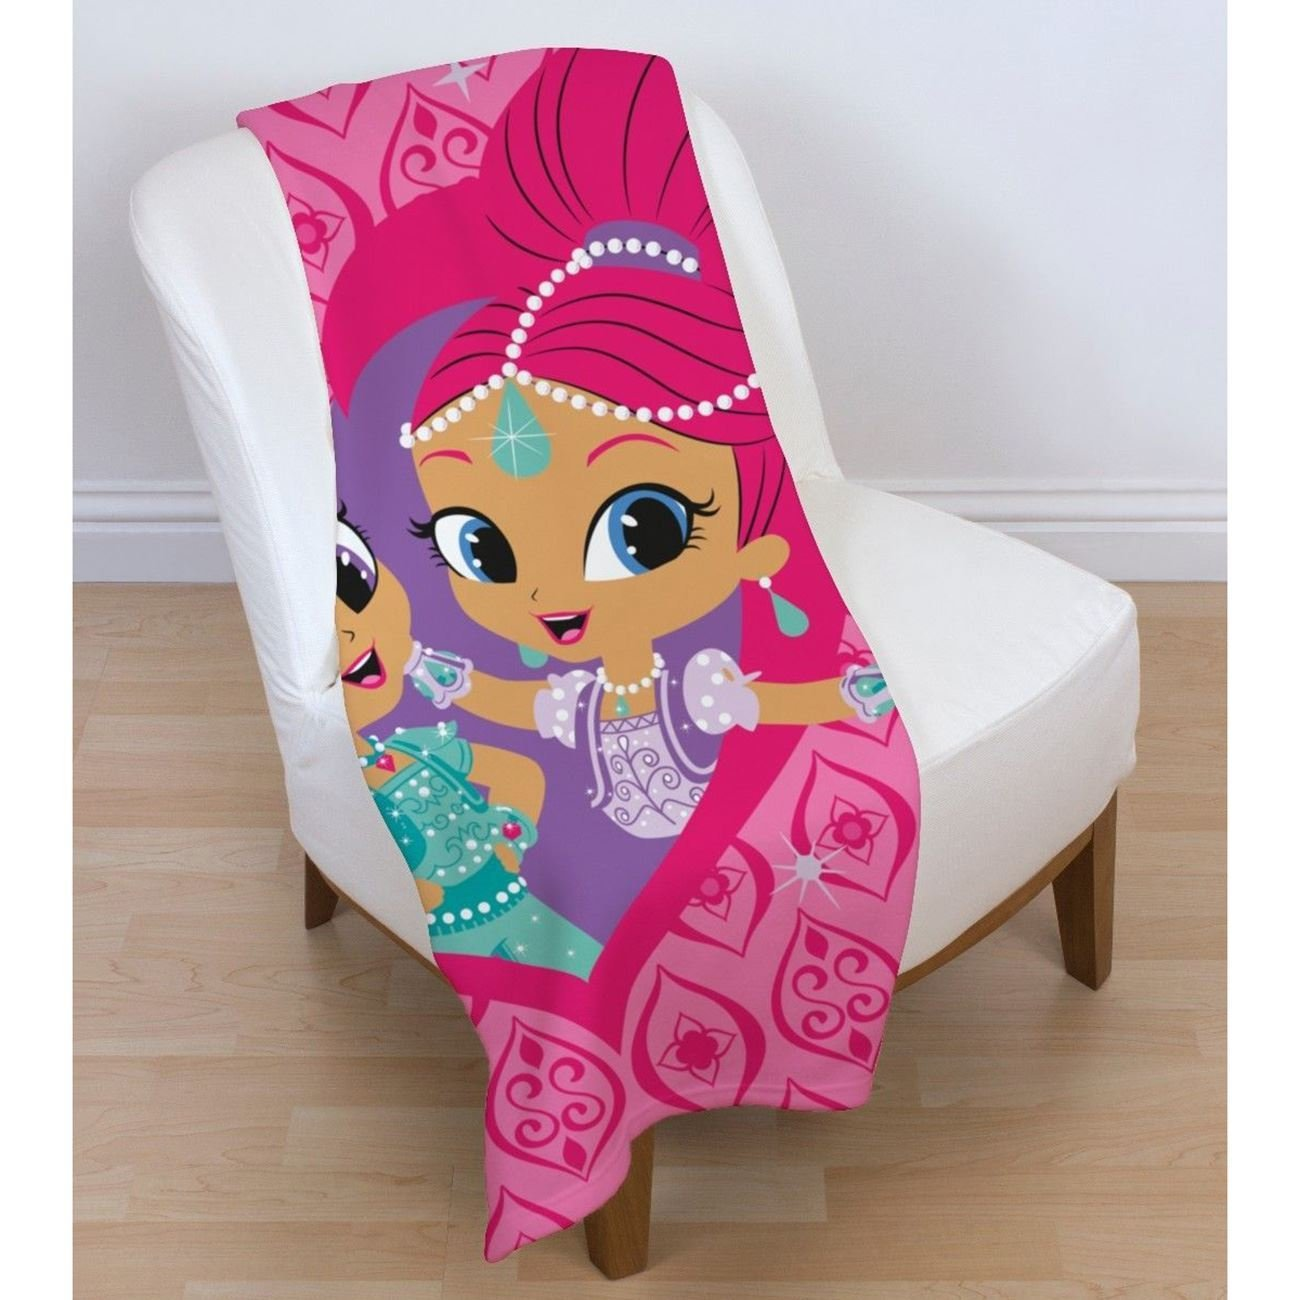 Shimmer & Shine 'Zahramay' Panel Fleece Blanket Throw